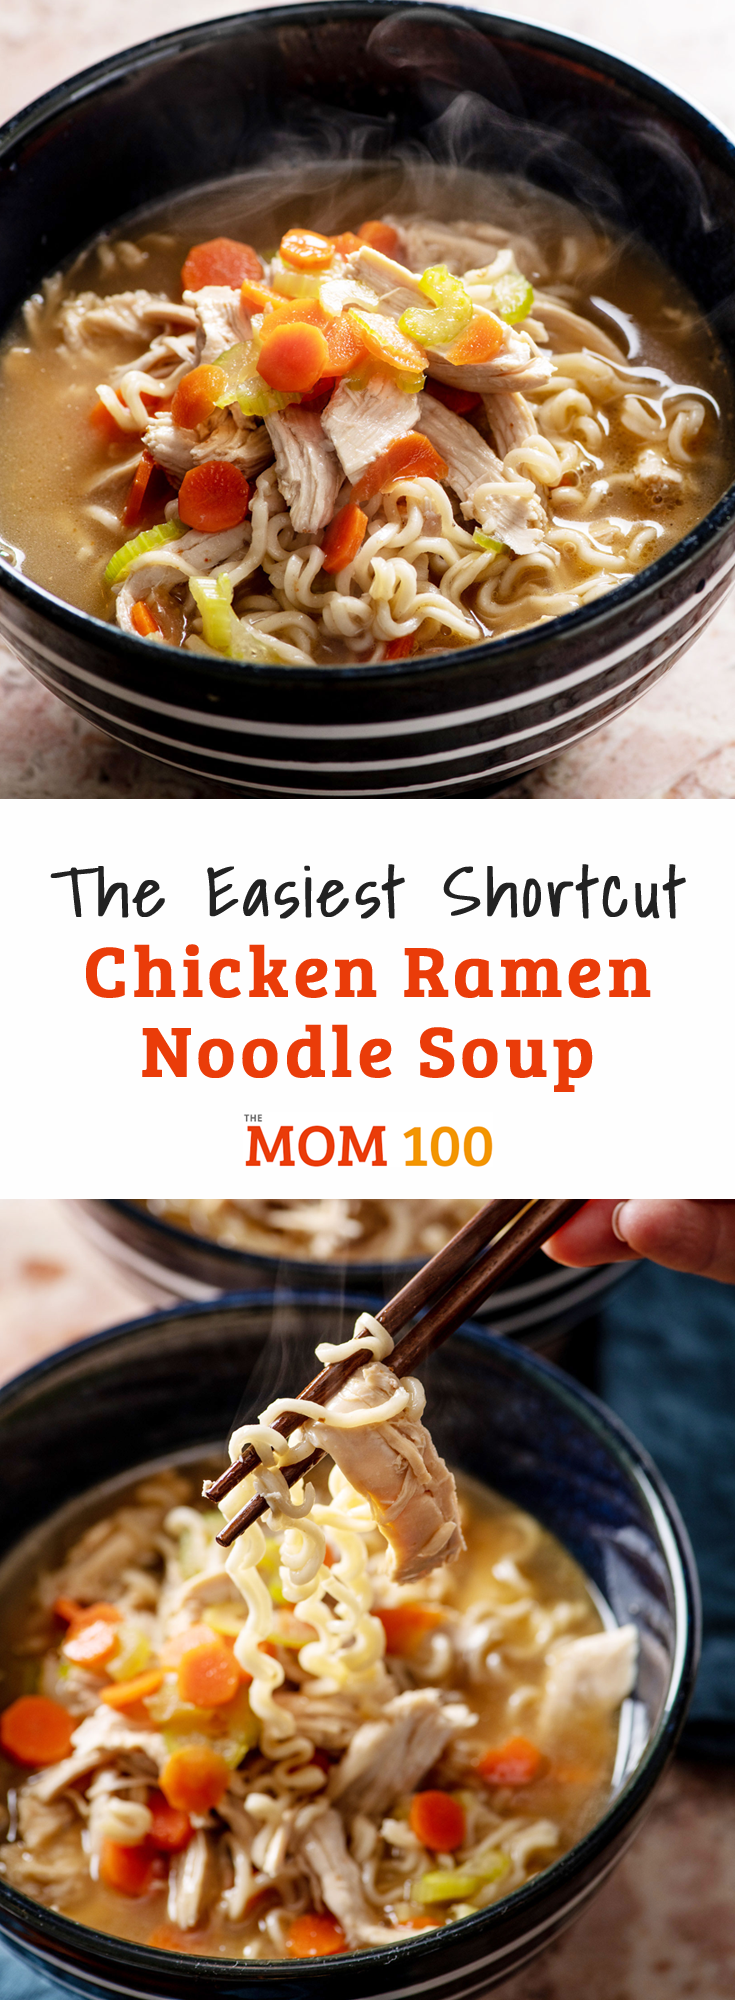 The Easiest Shortcut Chicken Ramen Noodle Soup pulls together a slew of clever shortcuts for a perfect chicken noodle soup.